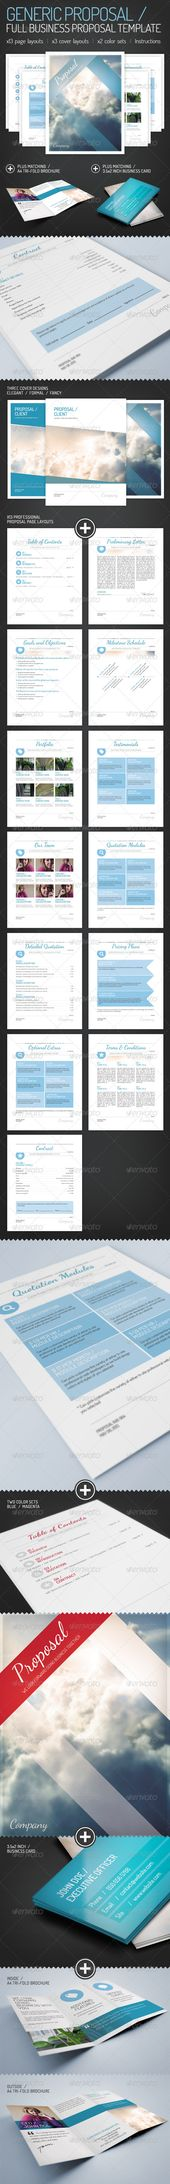 Web Design Business Proposal Template - Proposals \ Invoices - generic business proposal template